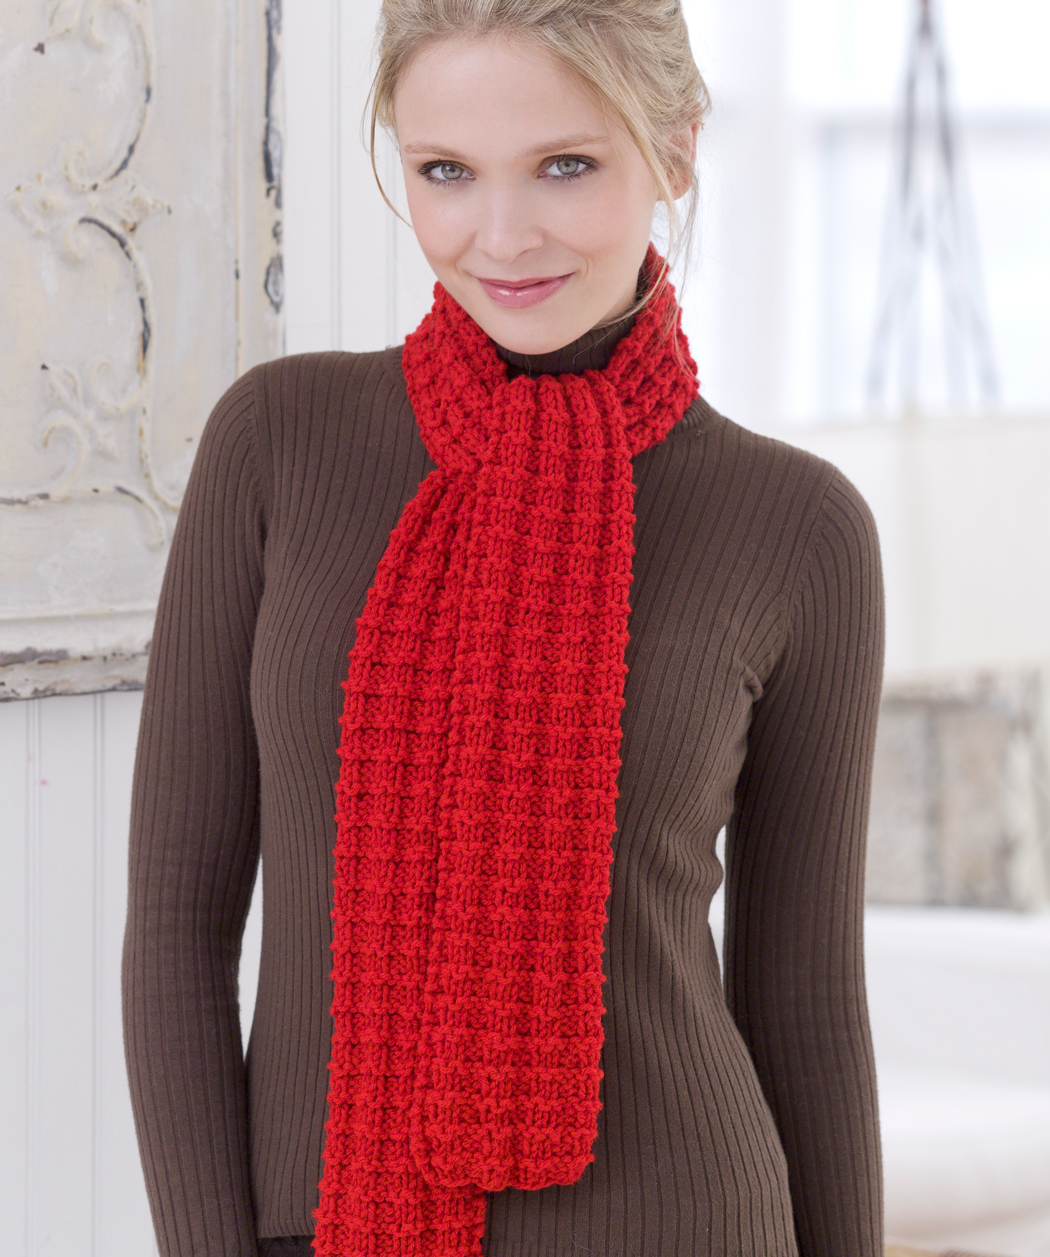 Knitting Patterns For Scarfs : Rede Mode: Scarves-knitting patterns